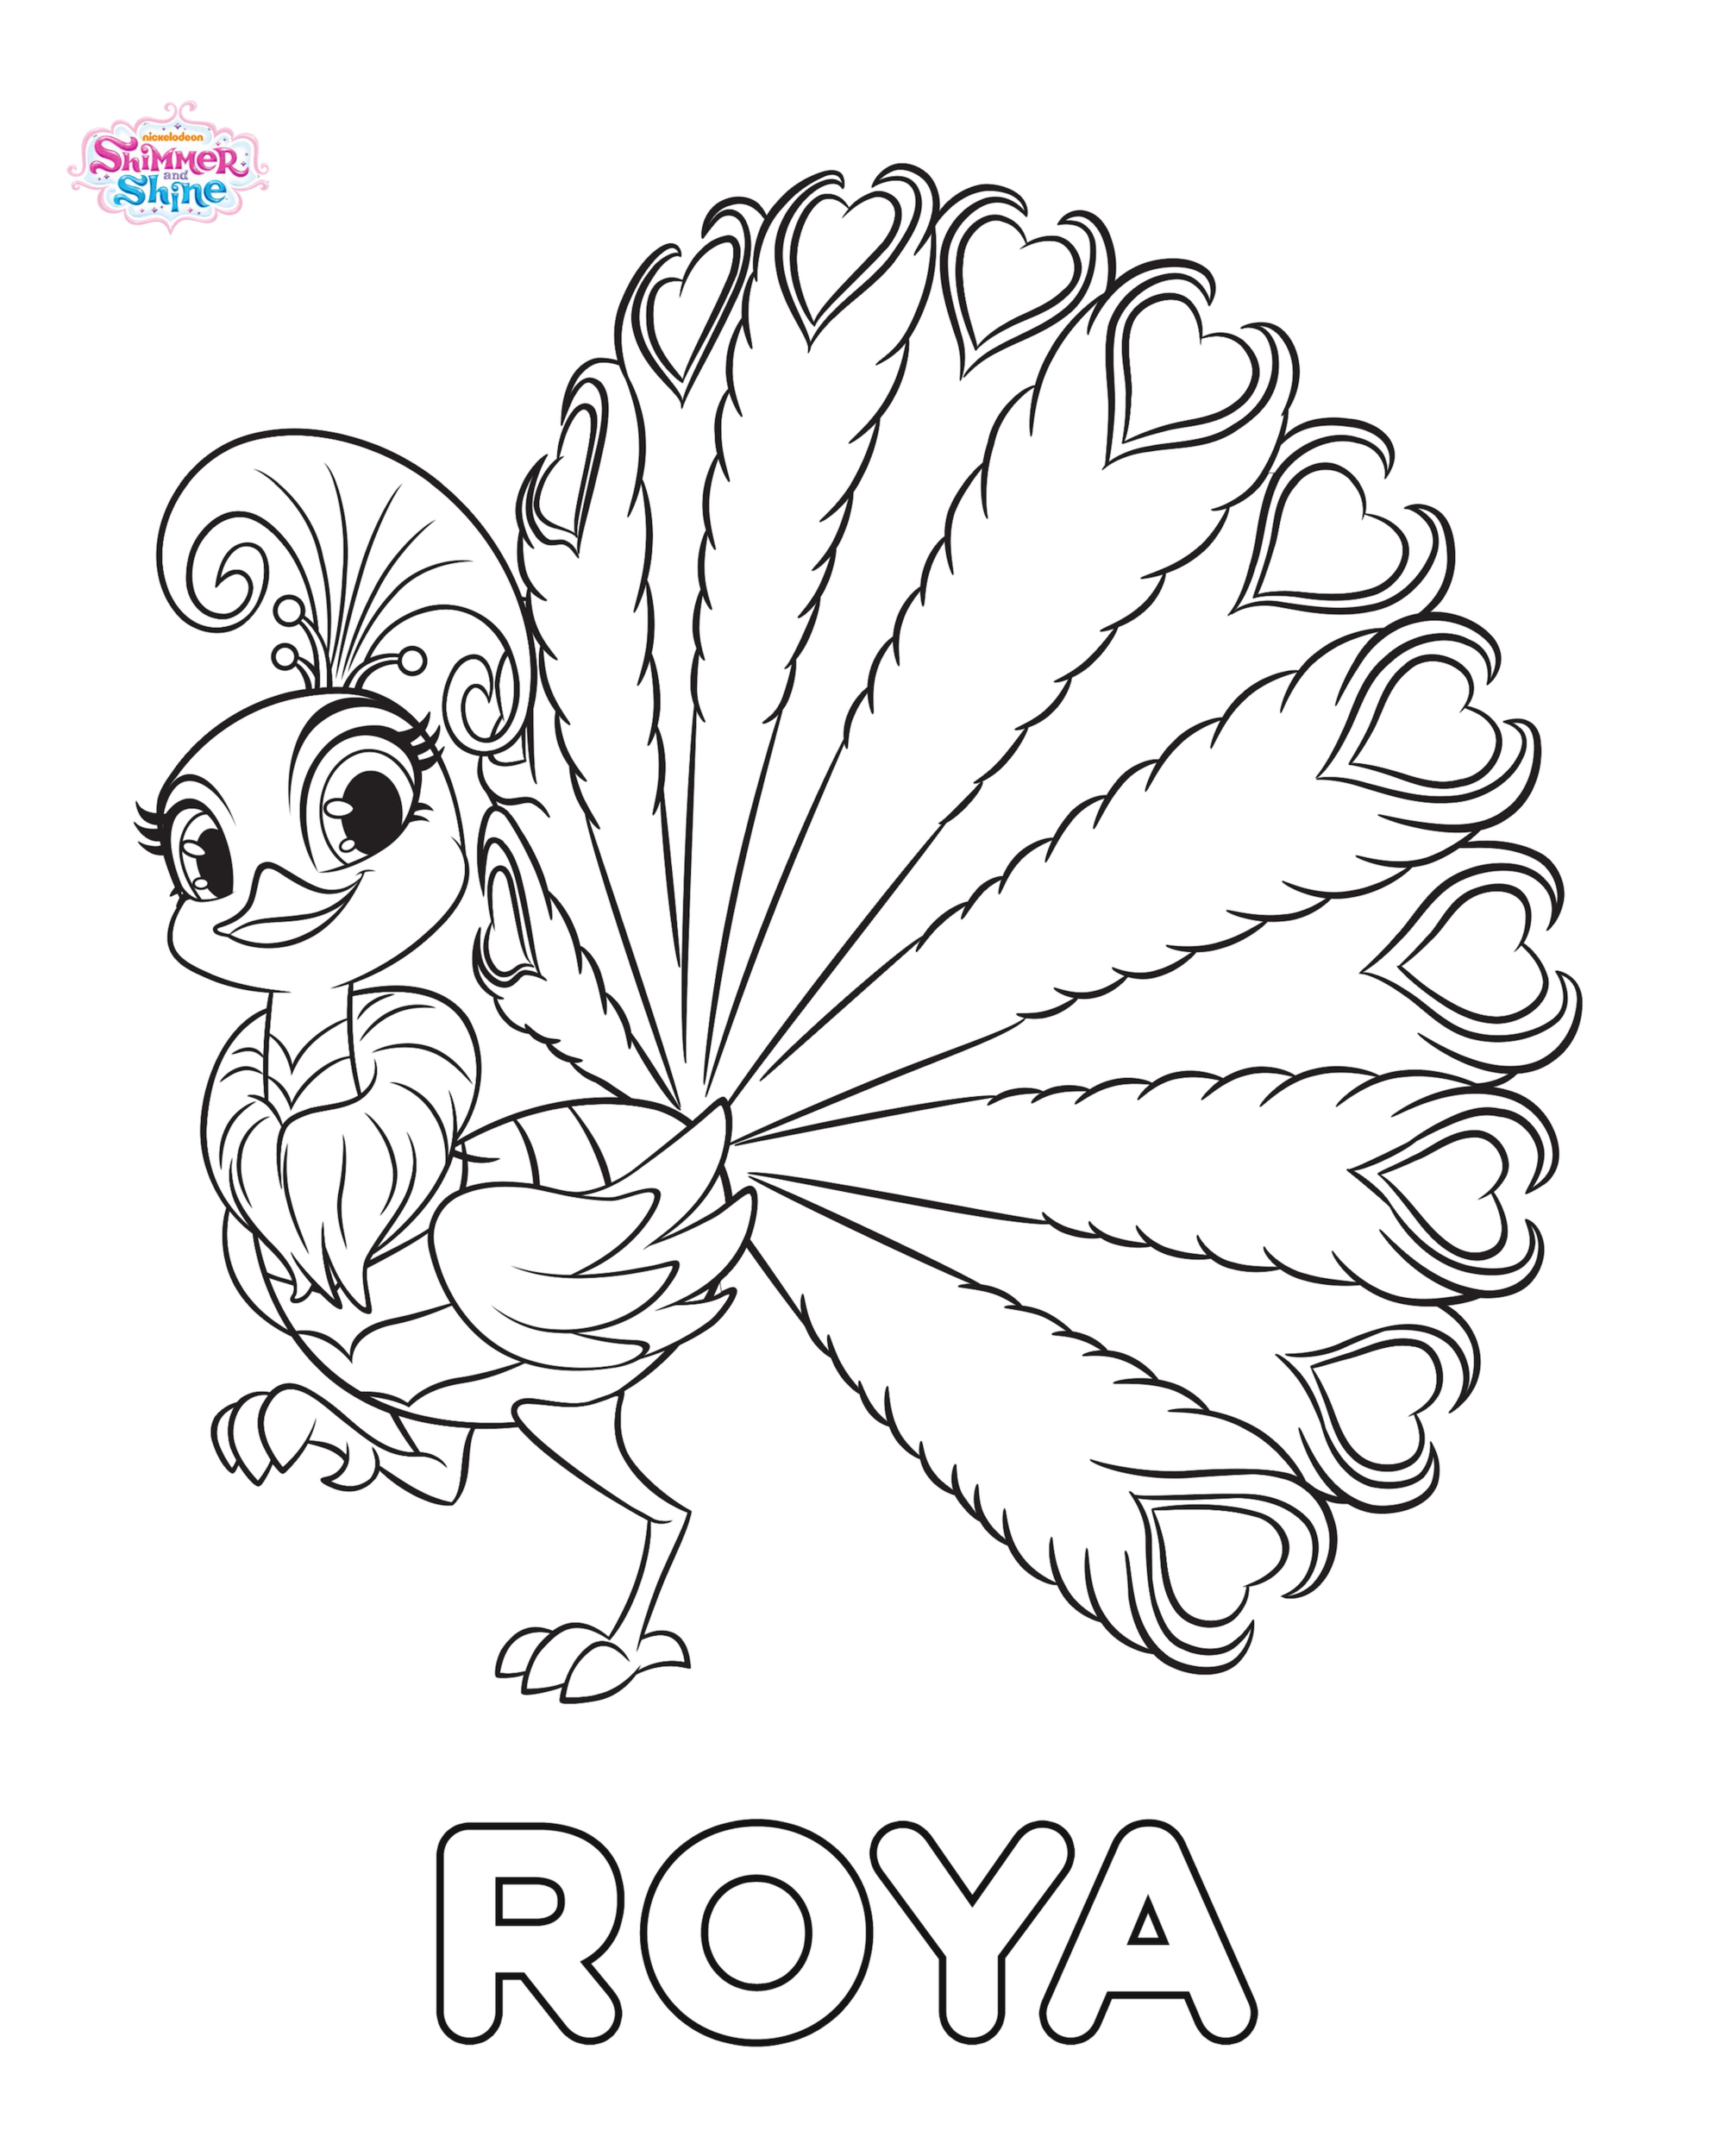 Sassy image with regard to shimmer and shine printable coloring pages